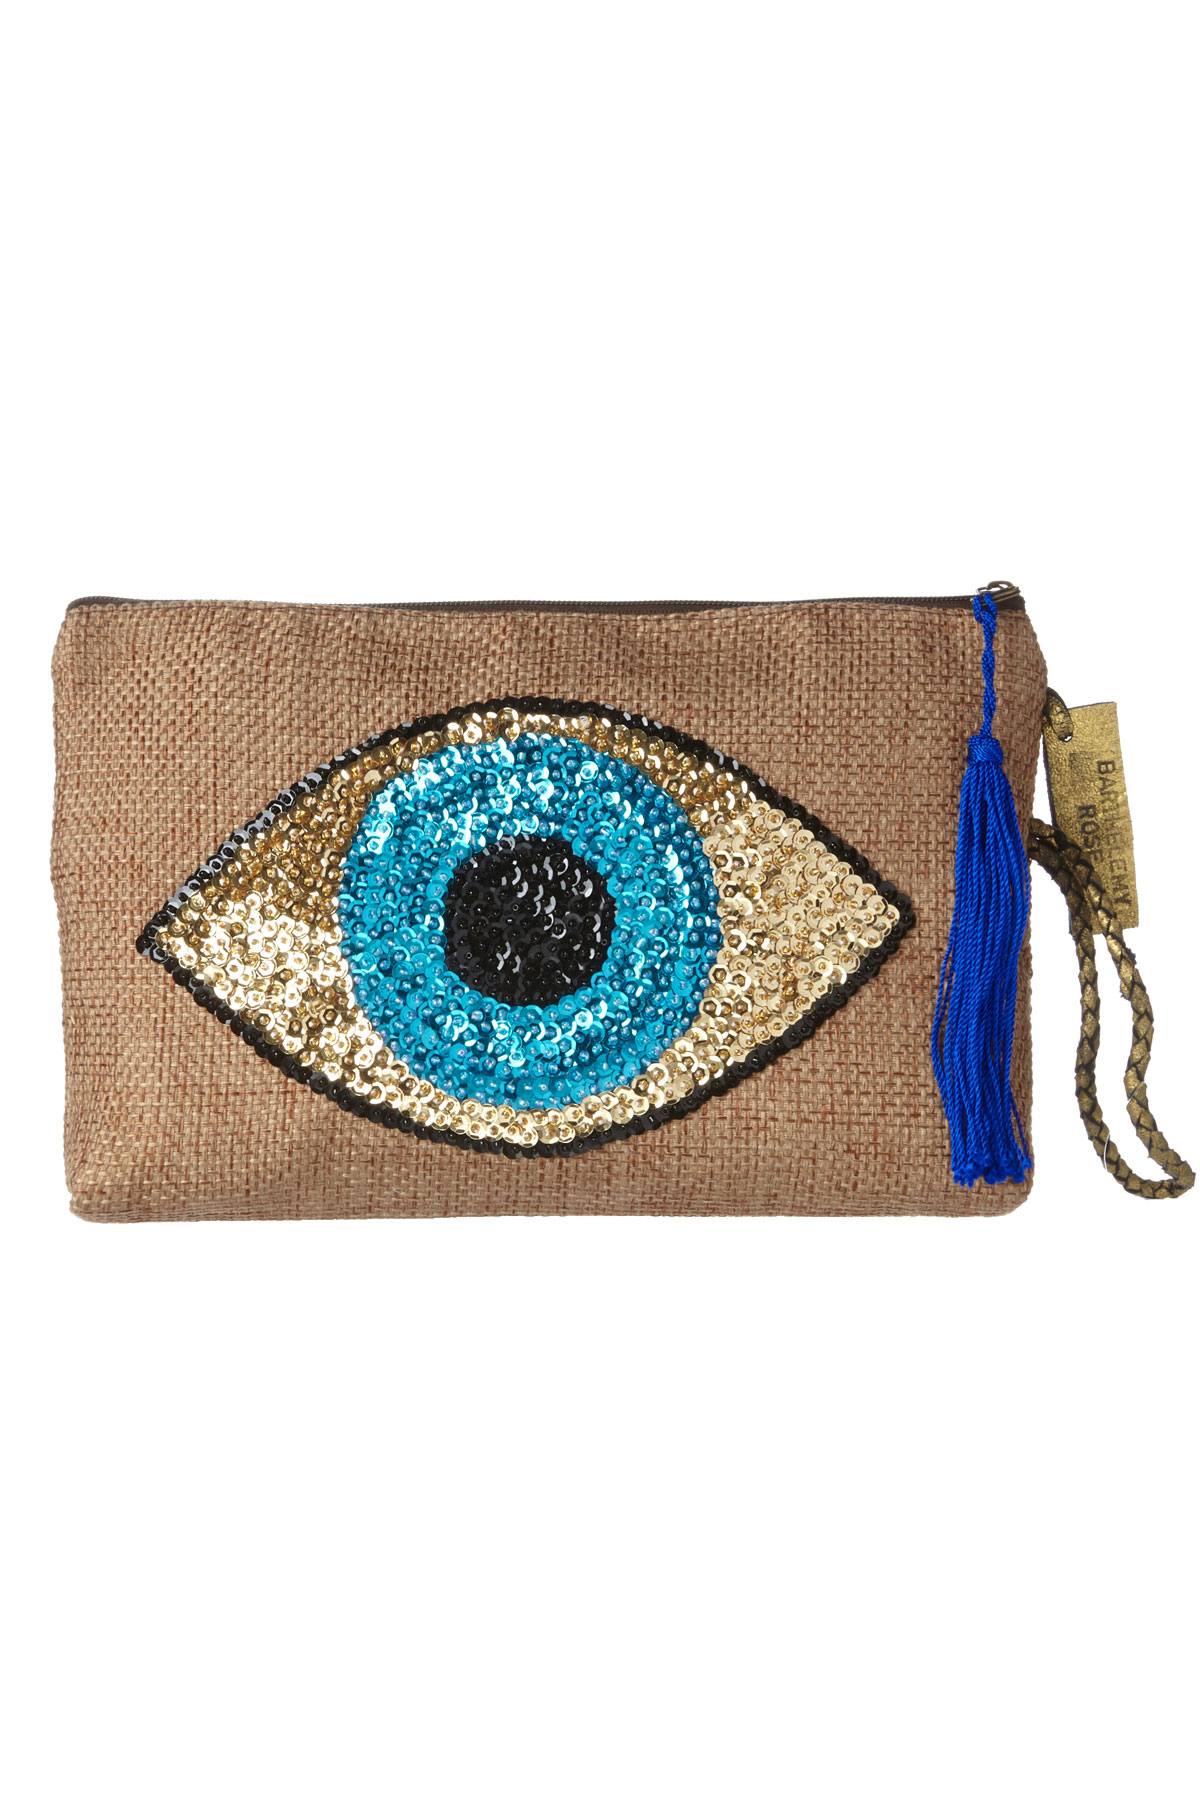 Handmade Canvas Sequin Evil Eye Clutch - Natural 3